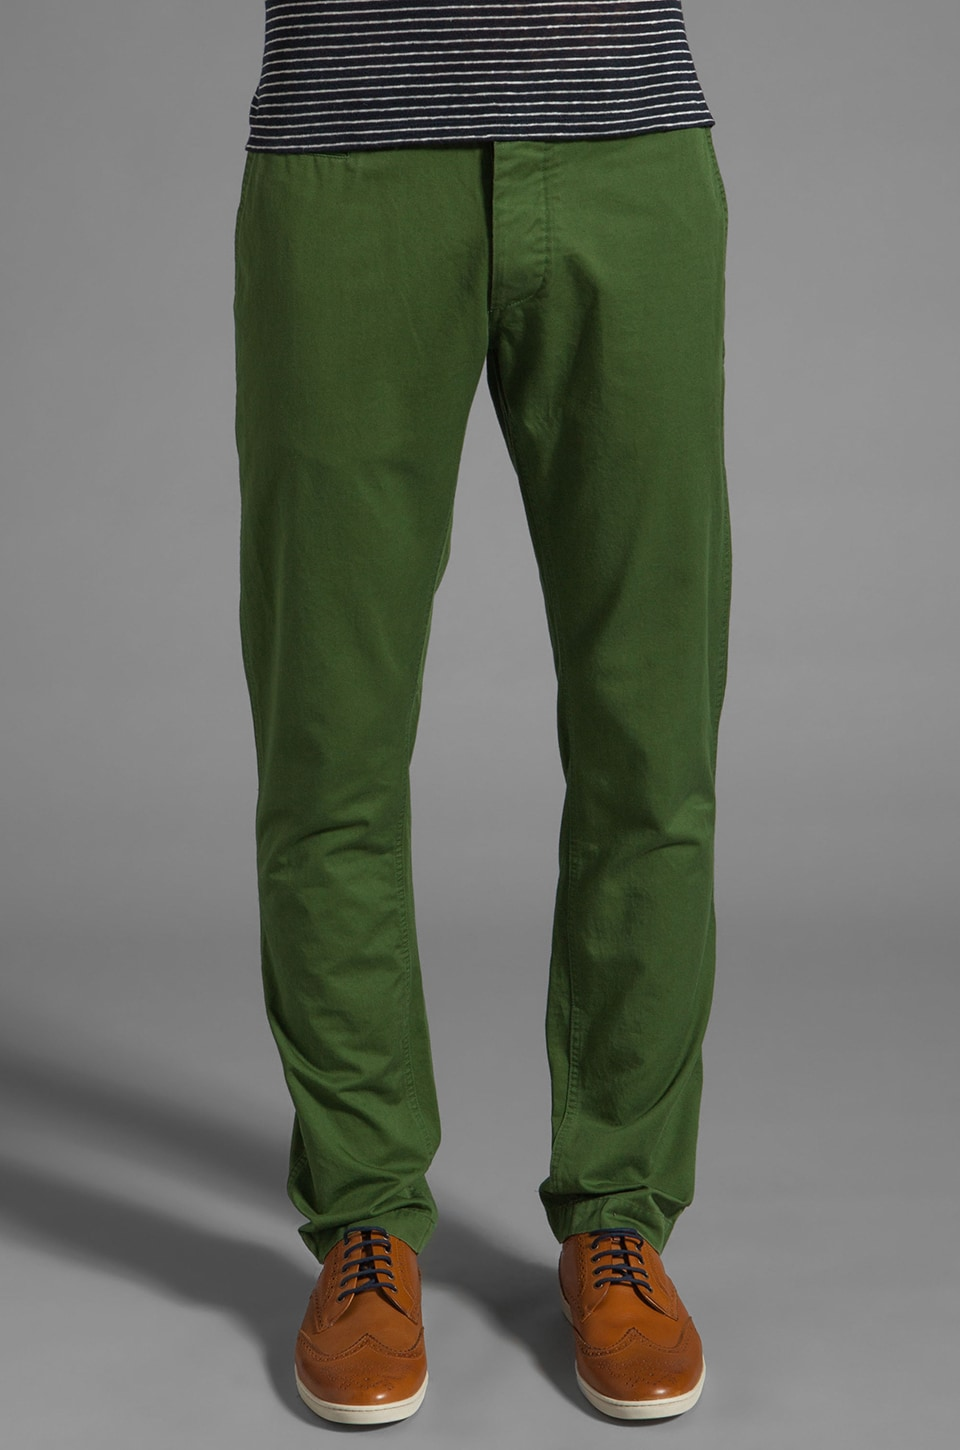 Shades of Grey by Micah Cohen Slim Fit Chino in Grass Green Twill